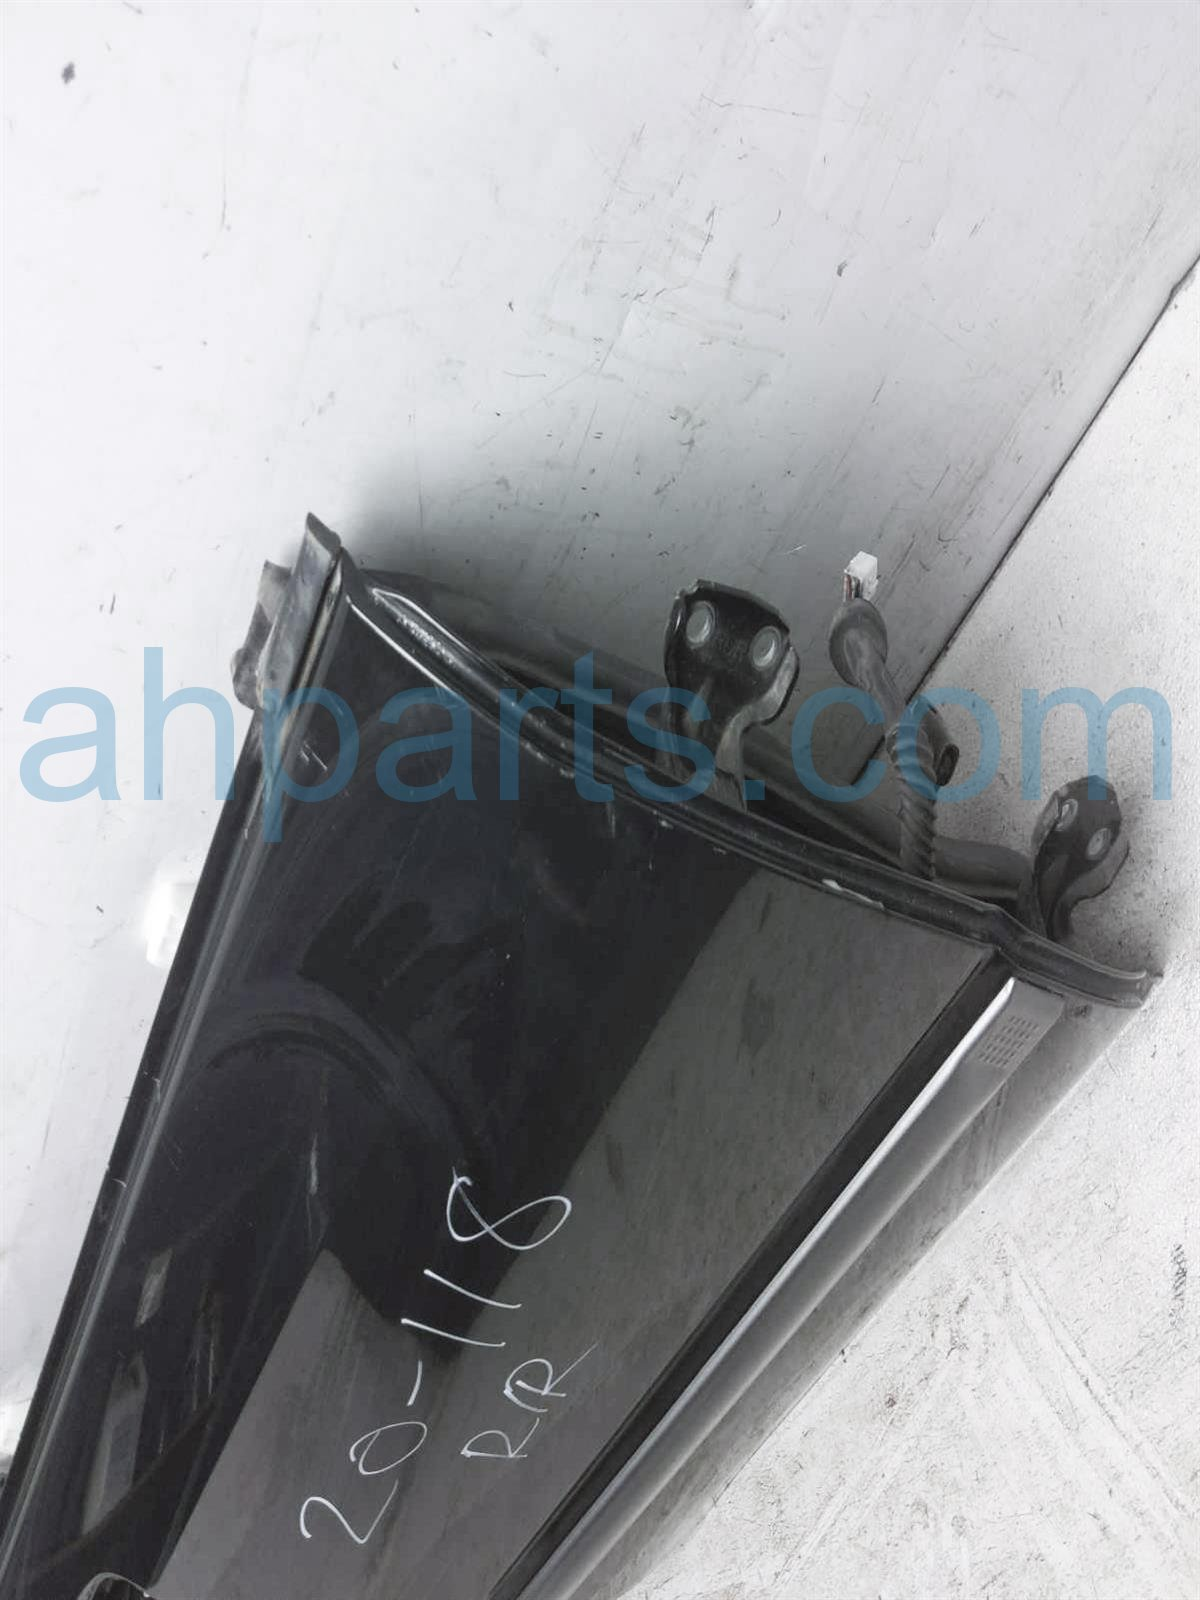 2007 Subaru Impreza Rear Passenger Door   Black   Shell Only 60409FE023 Replacement